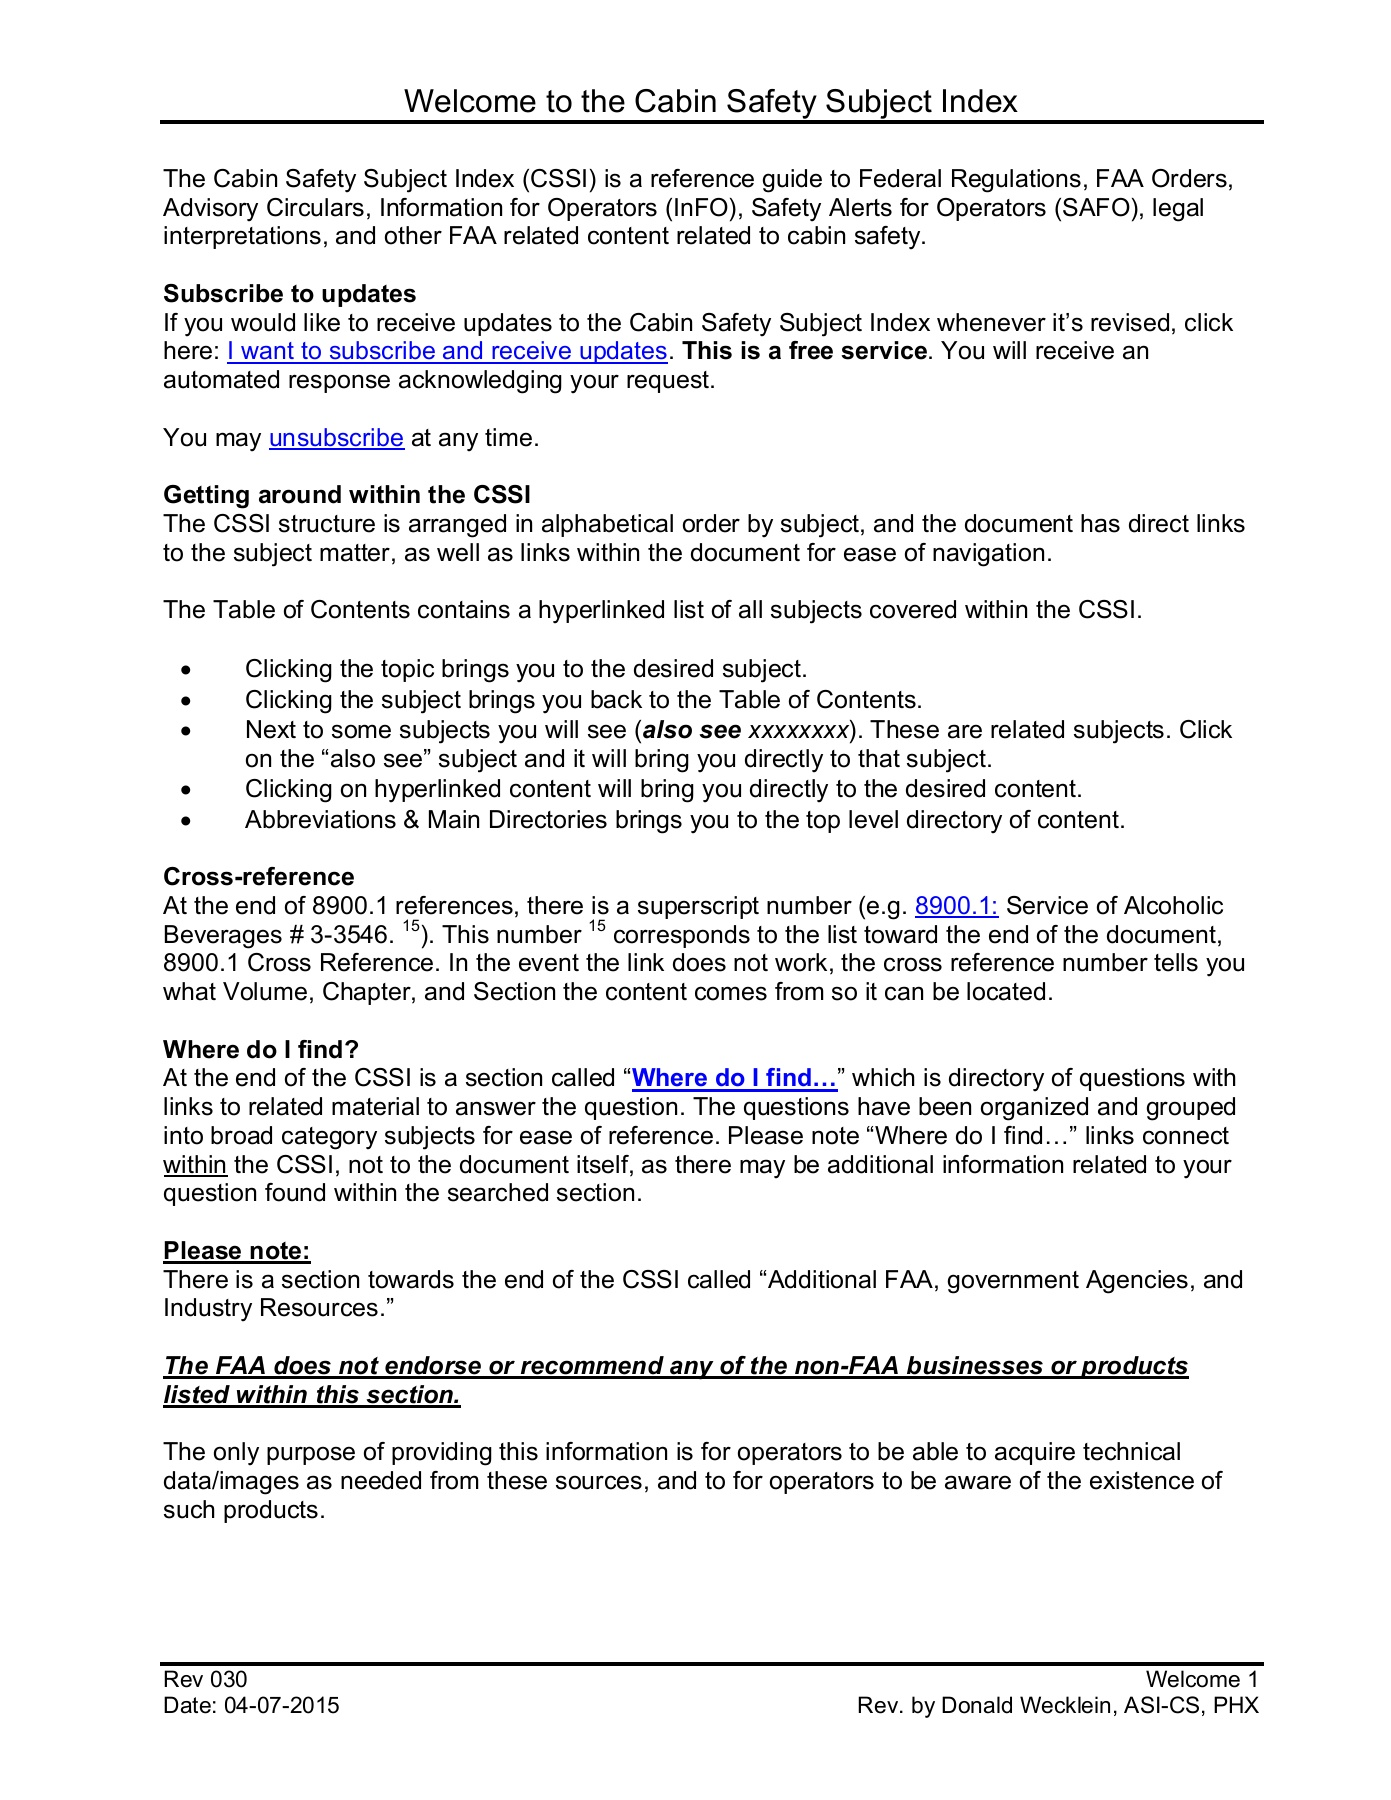 FAA Cabin Safety Index Pages 1 - 50 - Text Version | AnyFlip